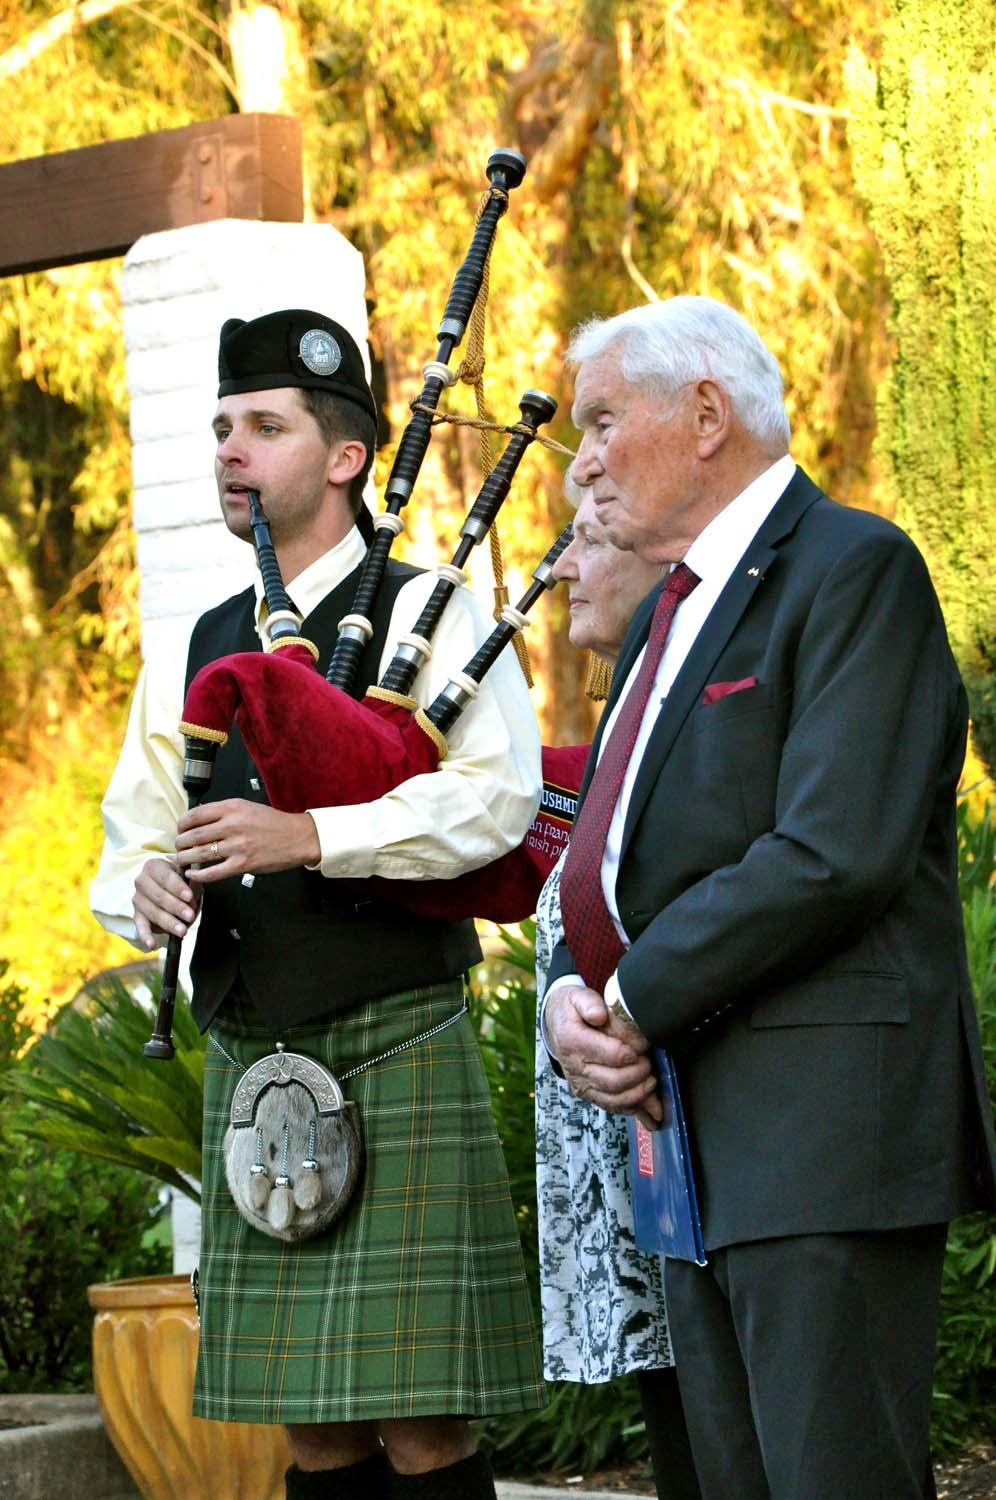 A piper with John Joseph Patrick Moylan and his wife.